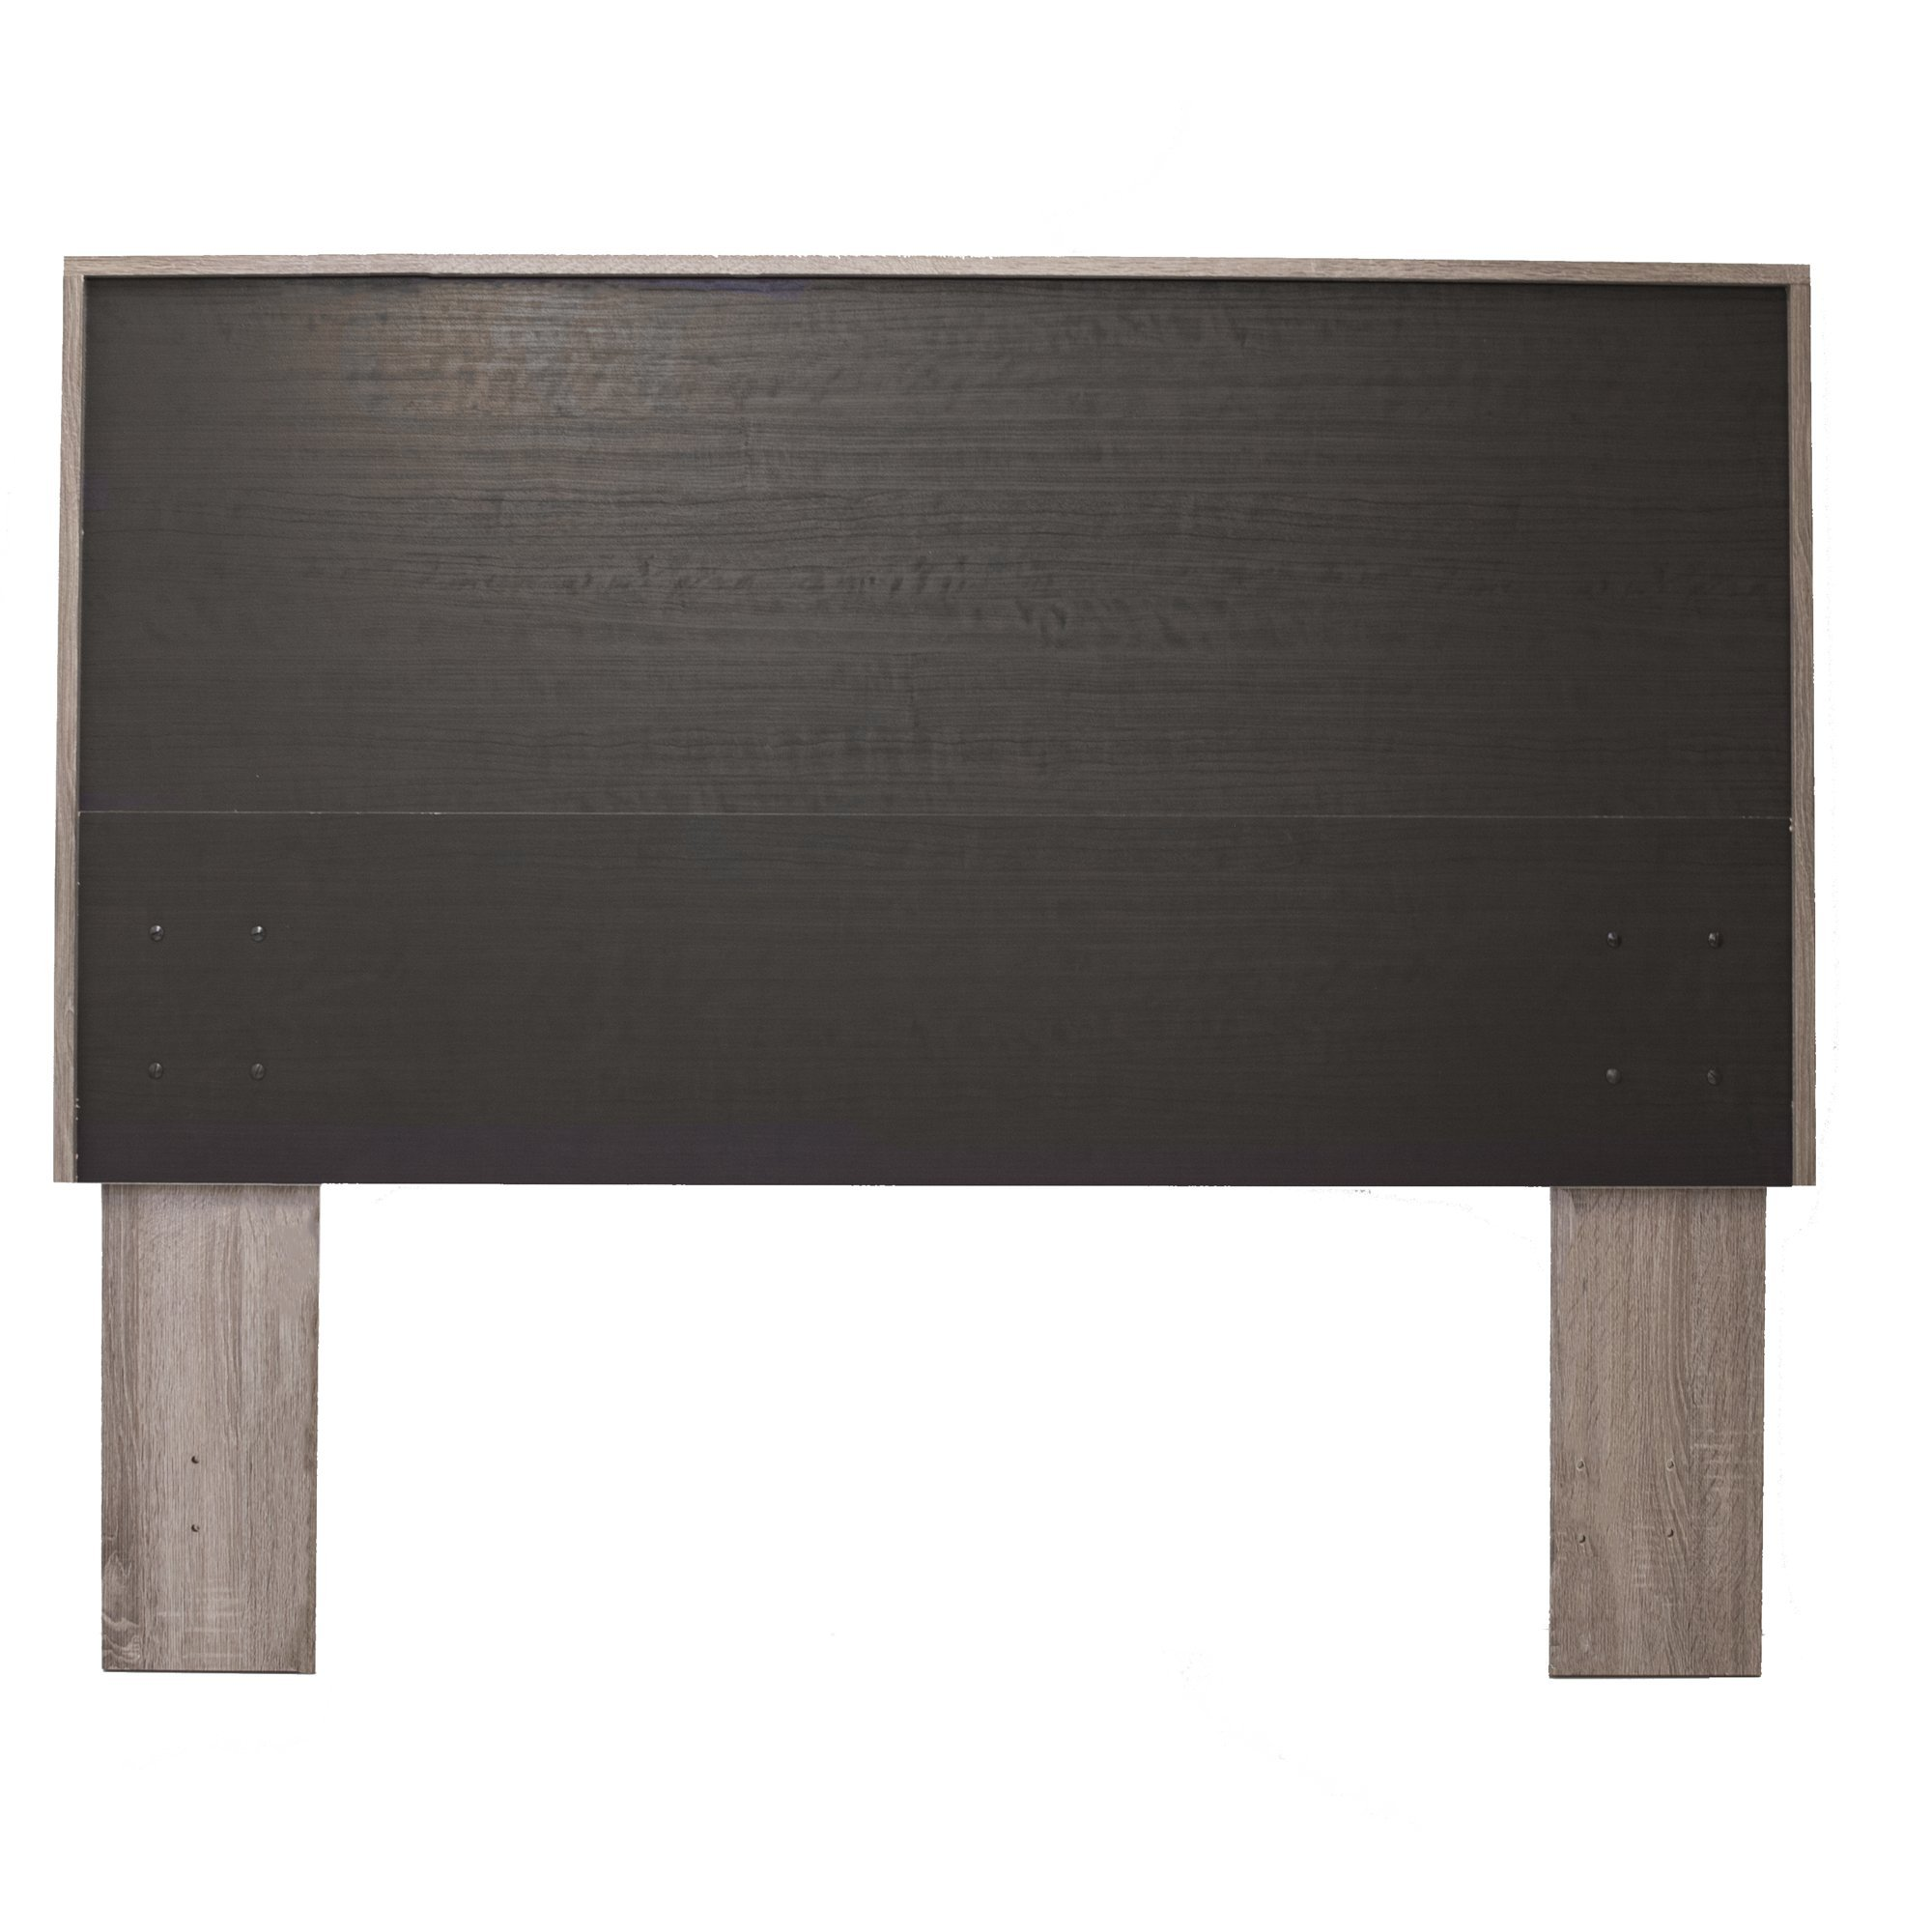 Manhattan Full or Queen Headboard in Sonoma and Java Brown by Home Star